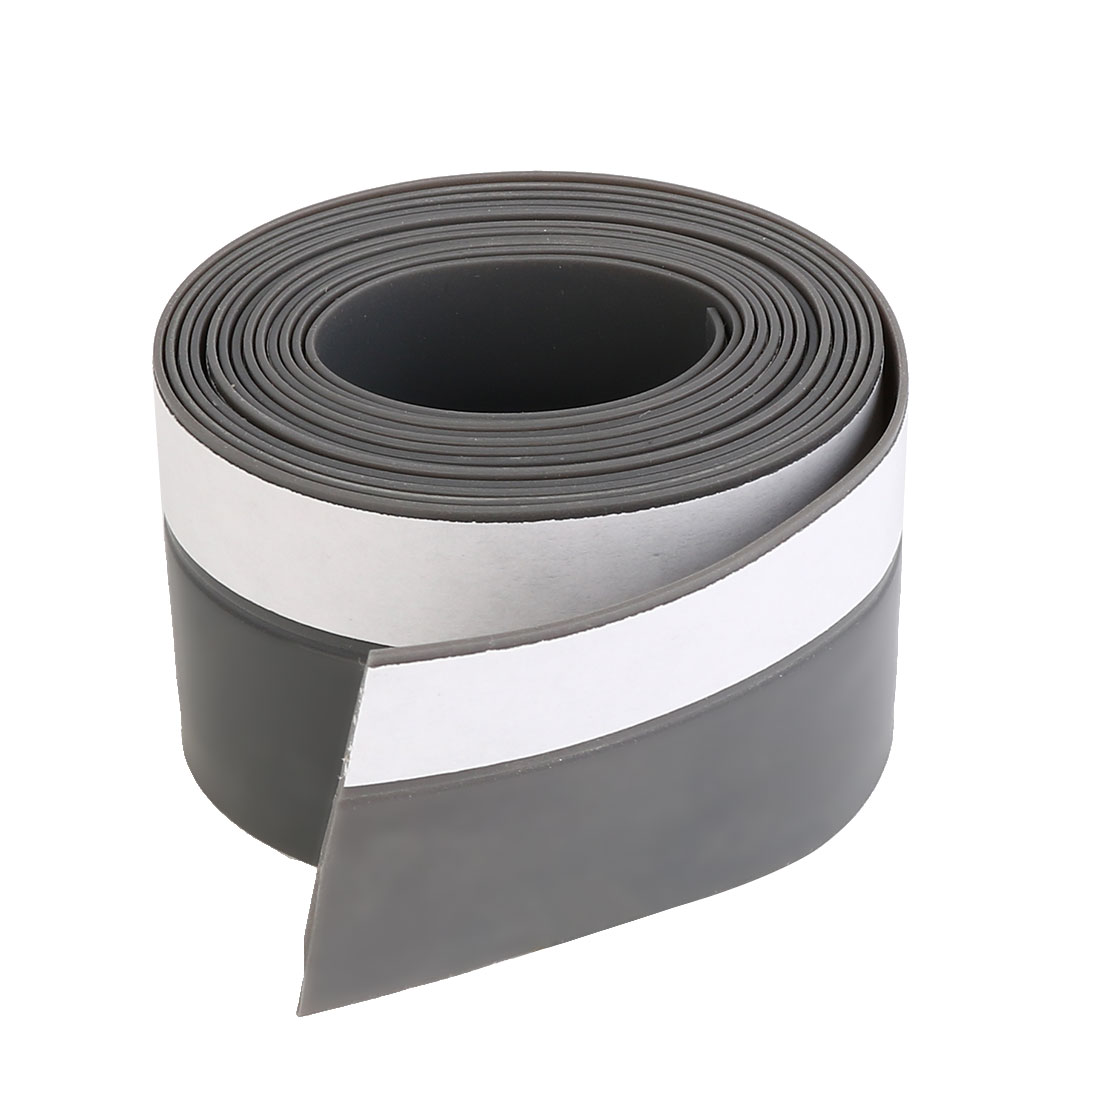 Weather Stripping Silicone Door Seal Stopper Gray 6.6 Ft Length,1.8 Inch Width